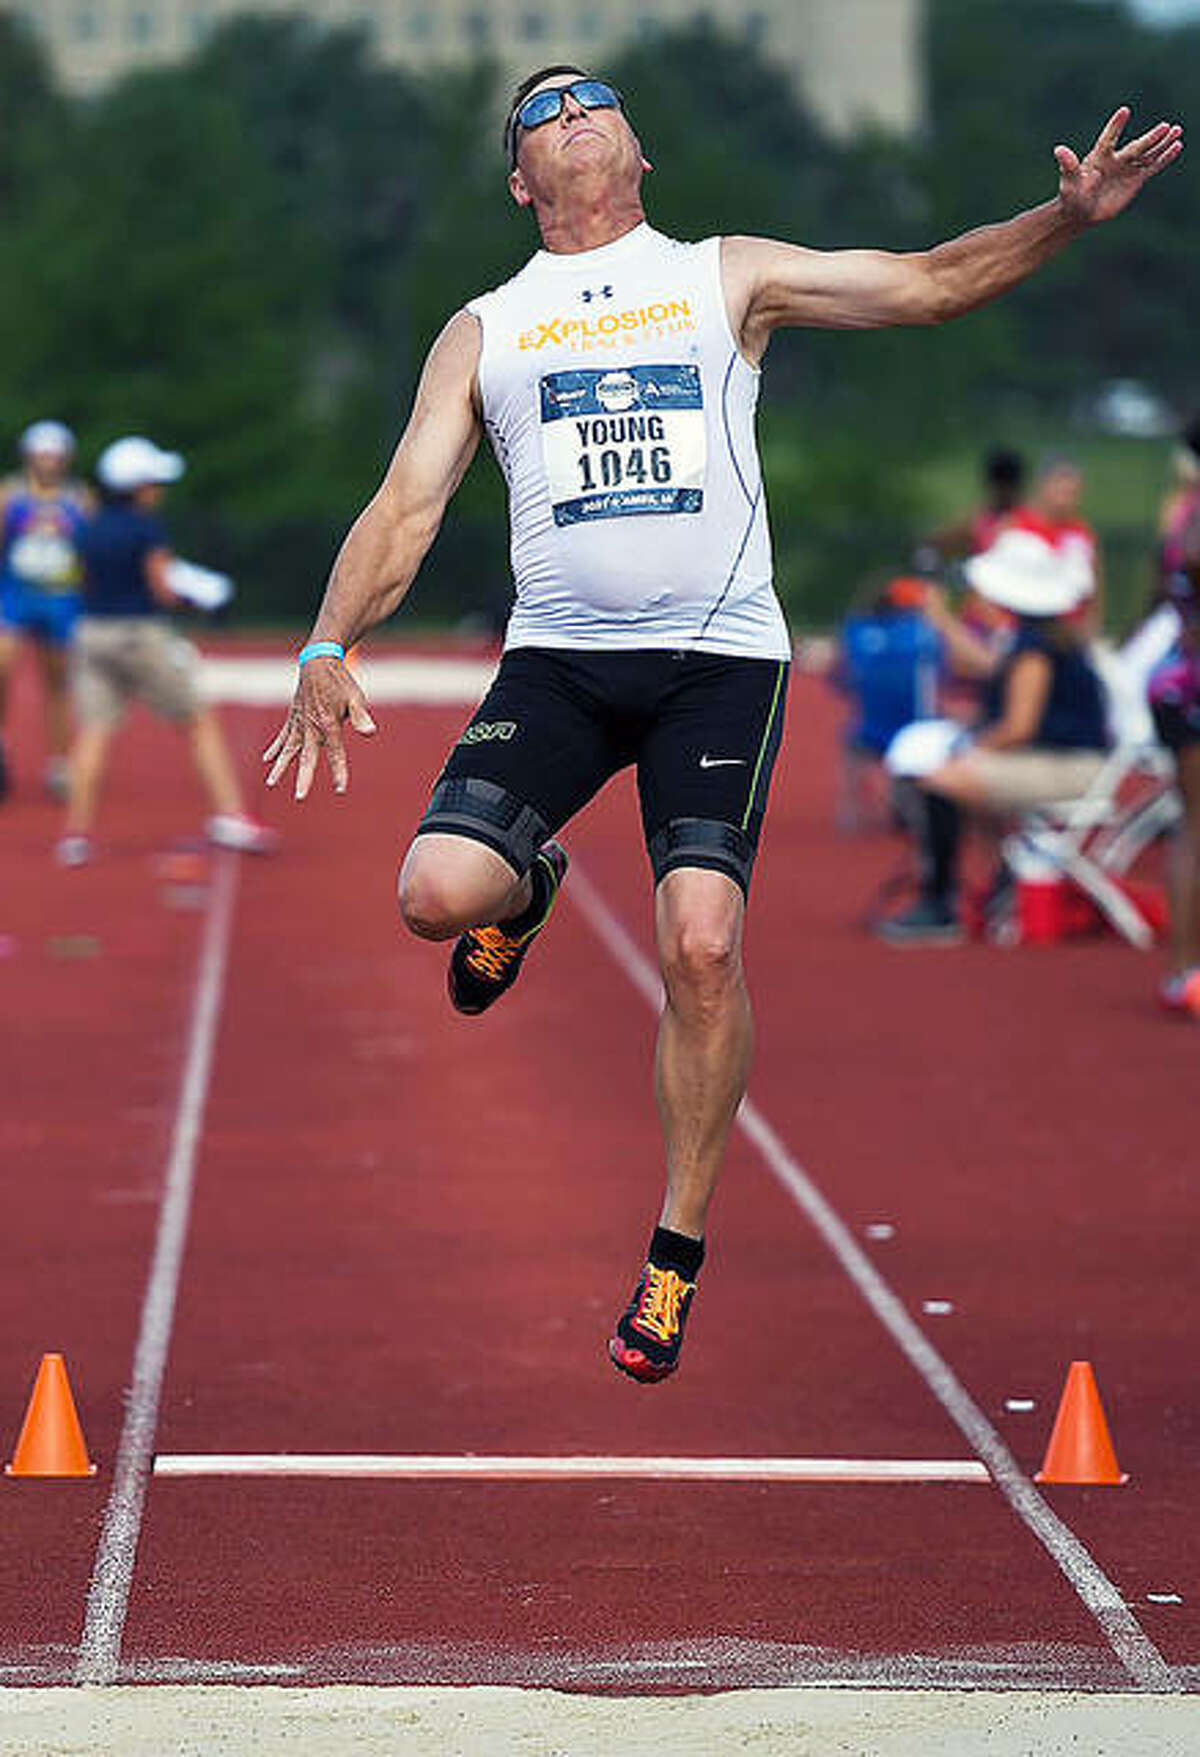 Mike Young of Wood River competes in the long jump at the USA Track and Field Masters Outdoor Championships at the Iowa State University Cyclone Sports Complex. Young finished eighth in the event at the four-day nationals